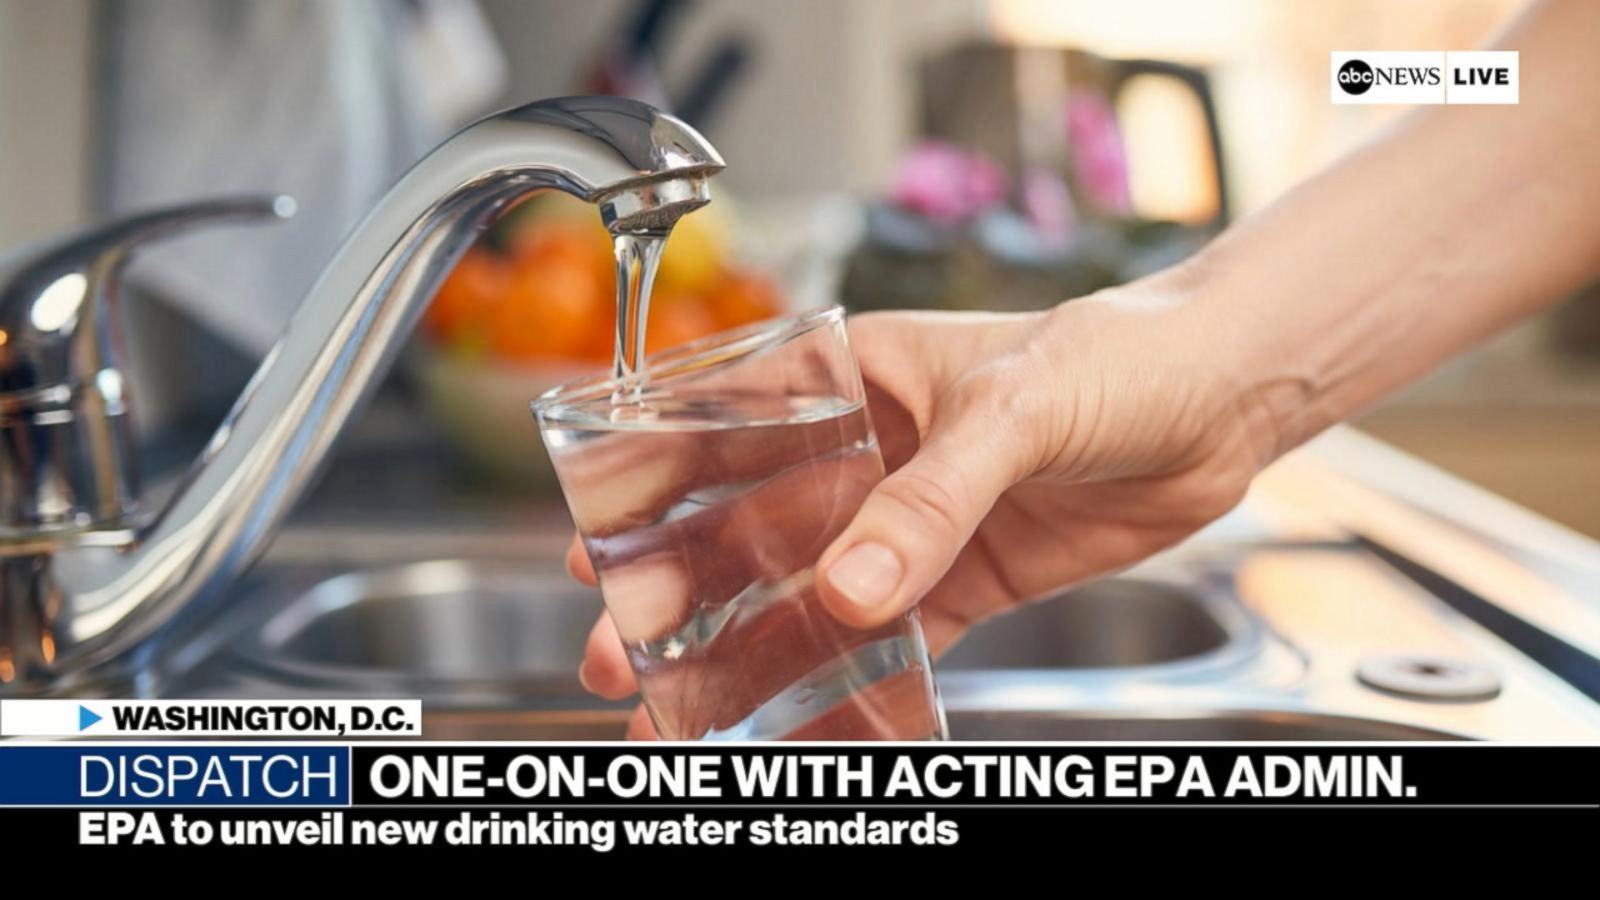 abcnews.go.com - Stephanie Ebbs - EPA chief says water issues a bigger crisis than climate change